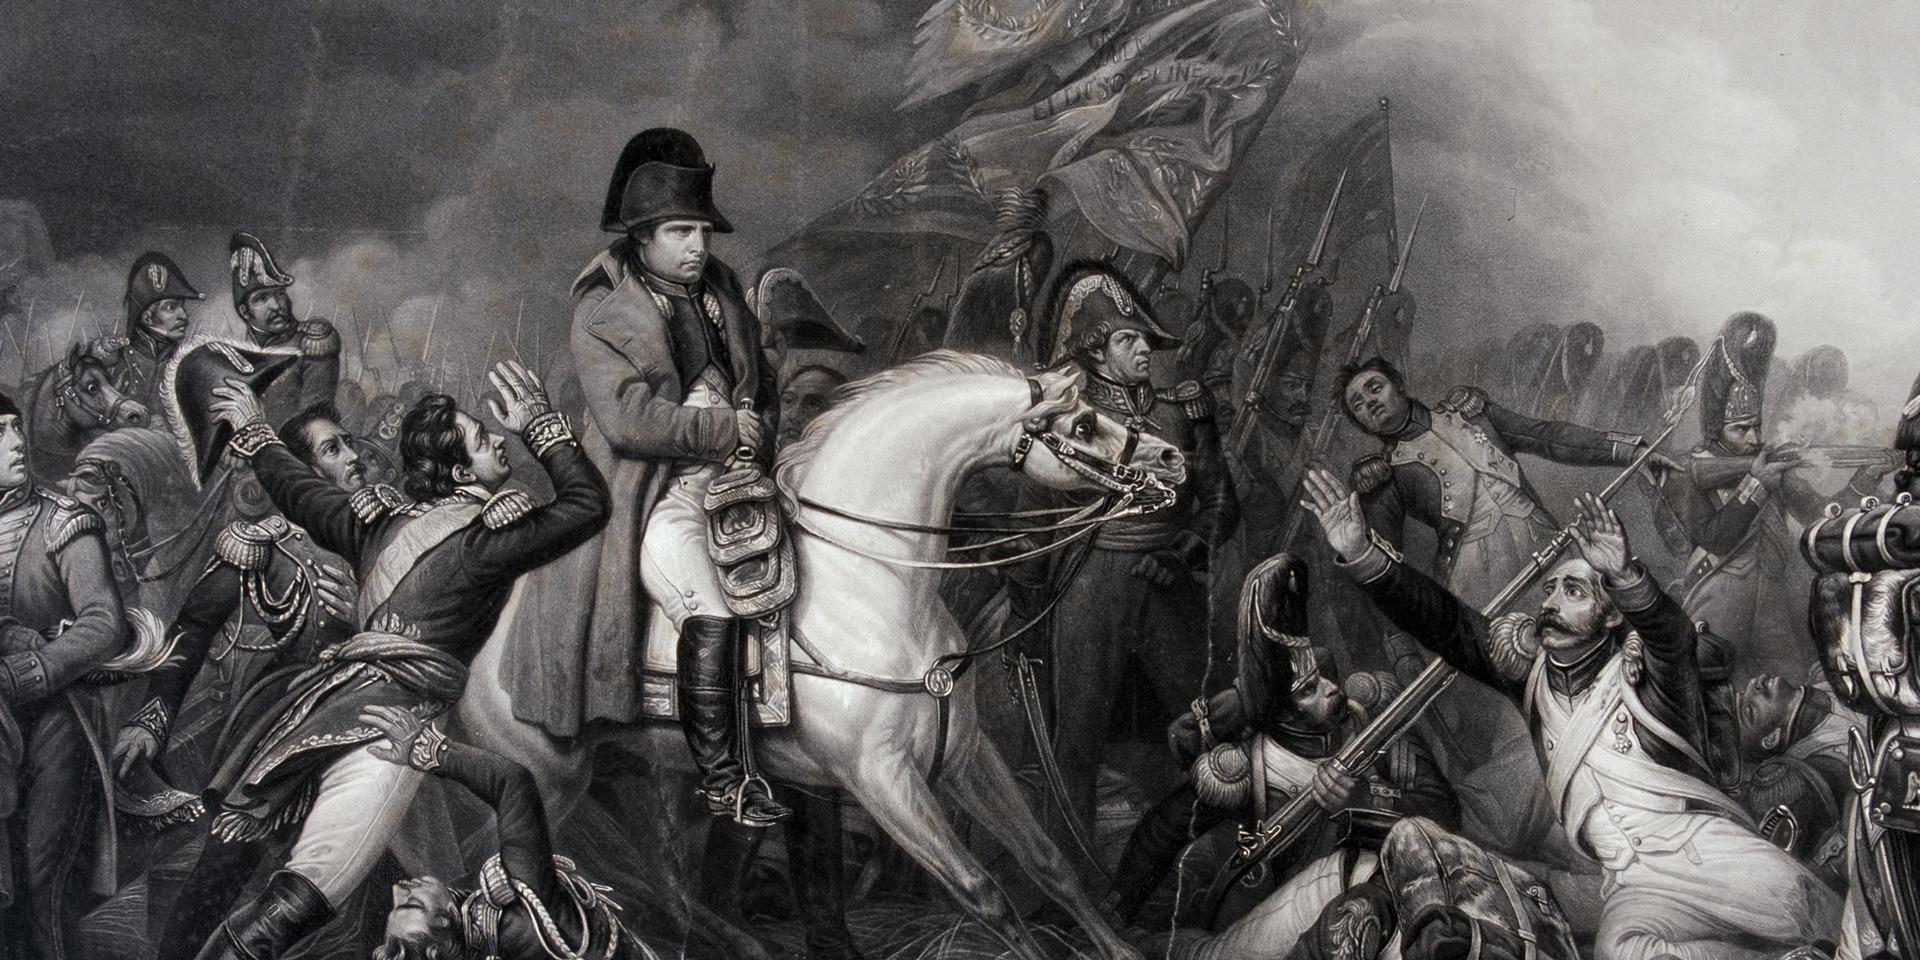 Napoleon at Waterloo, 1815